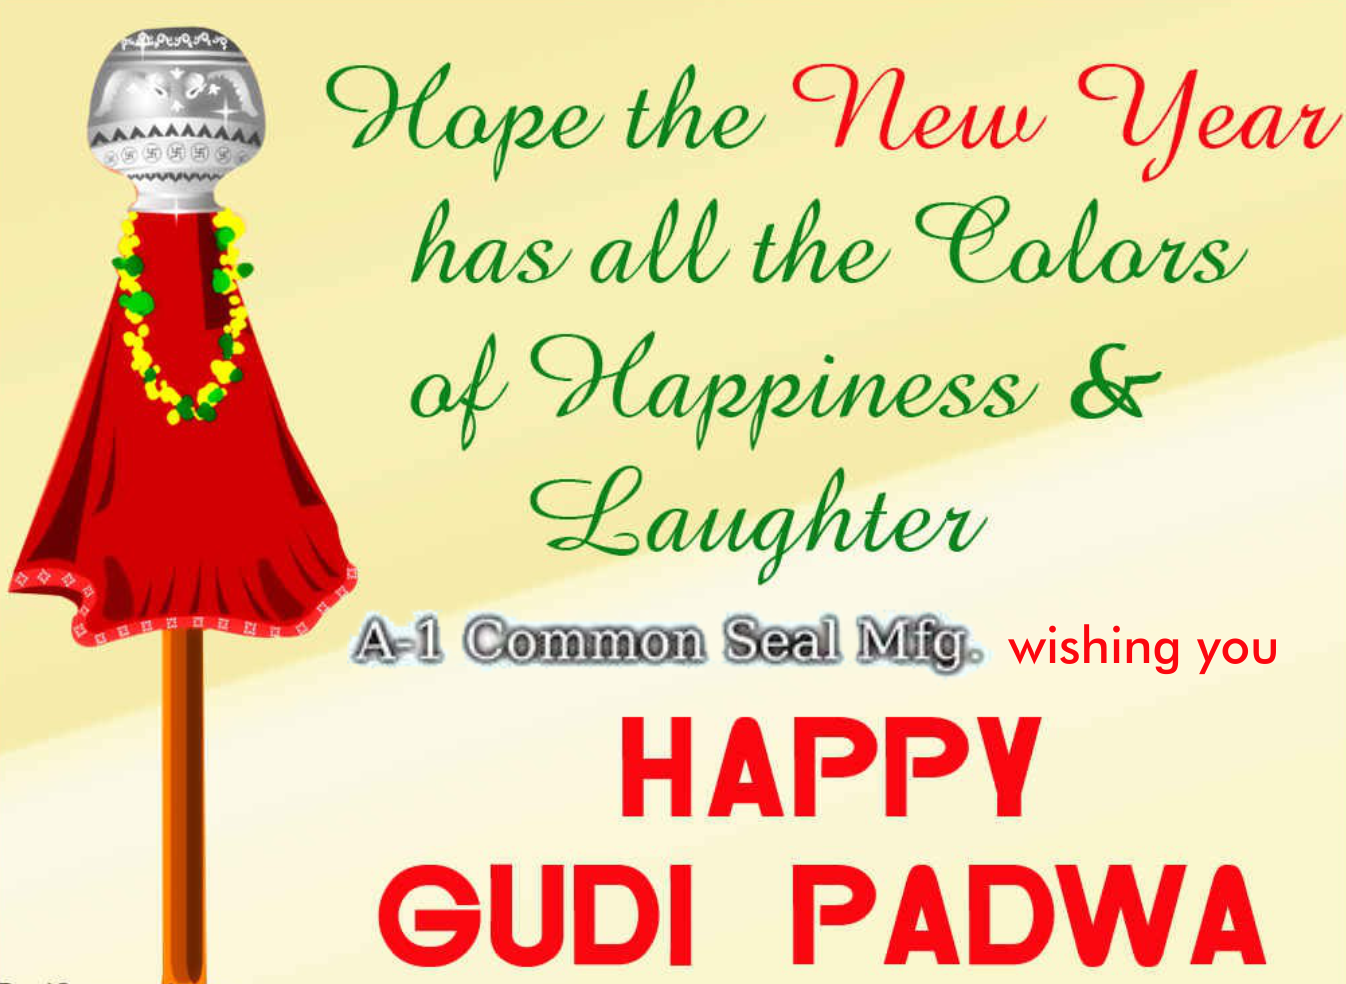 Pin By A1 Common Seal On Gudi Padwa Pinterest